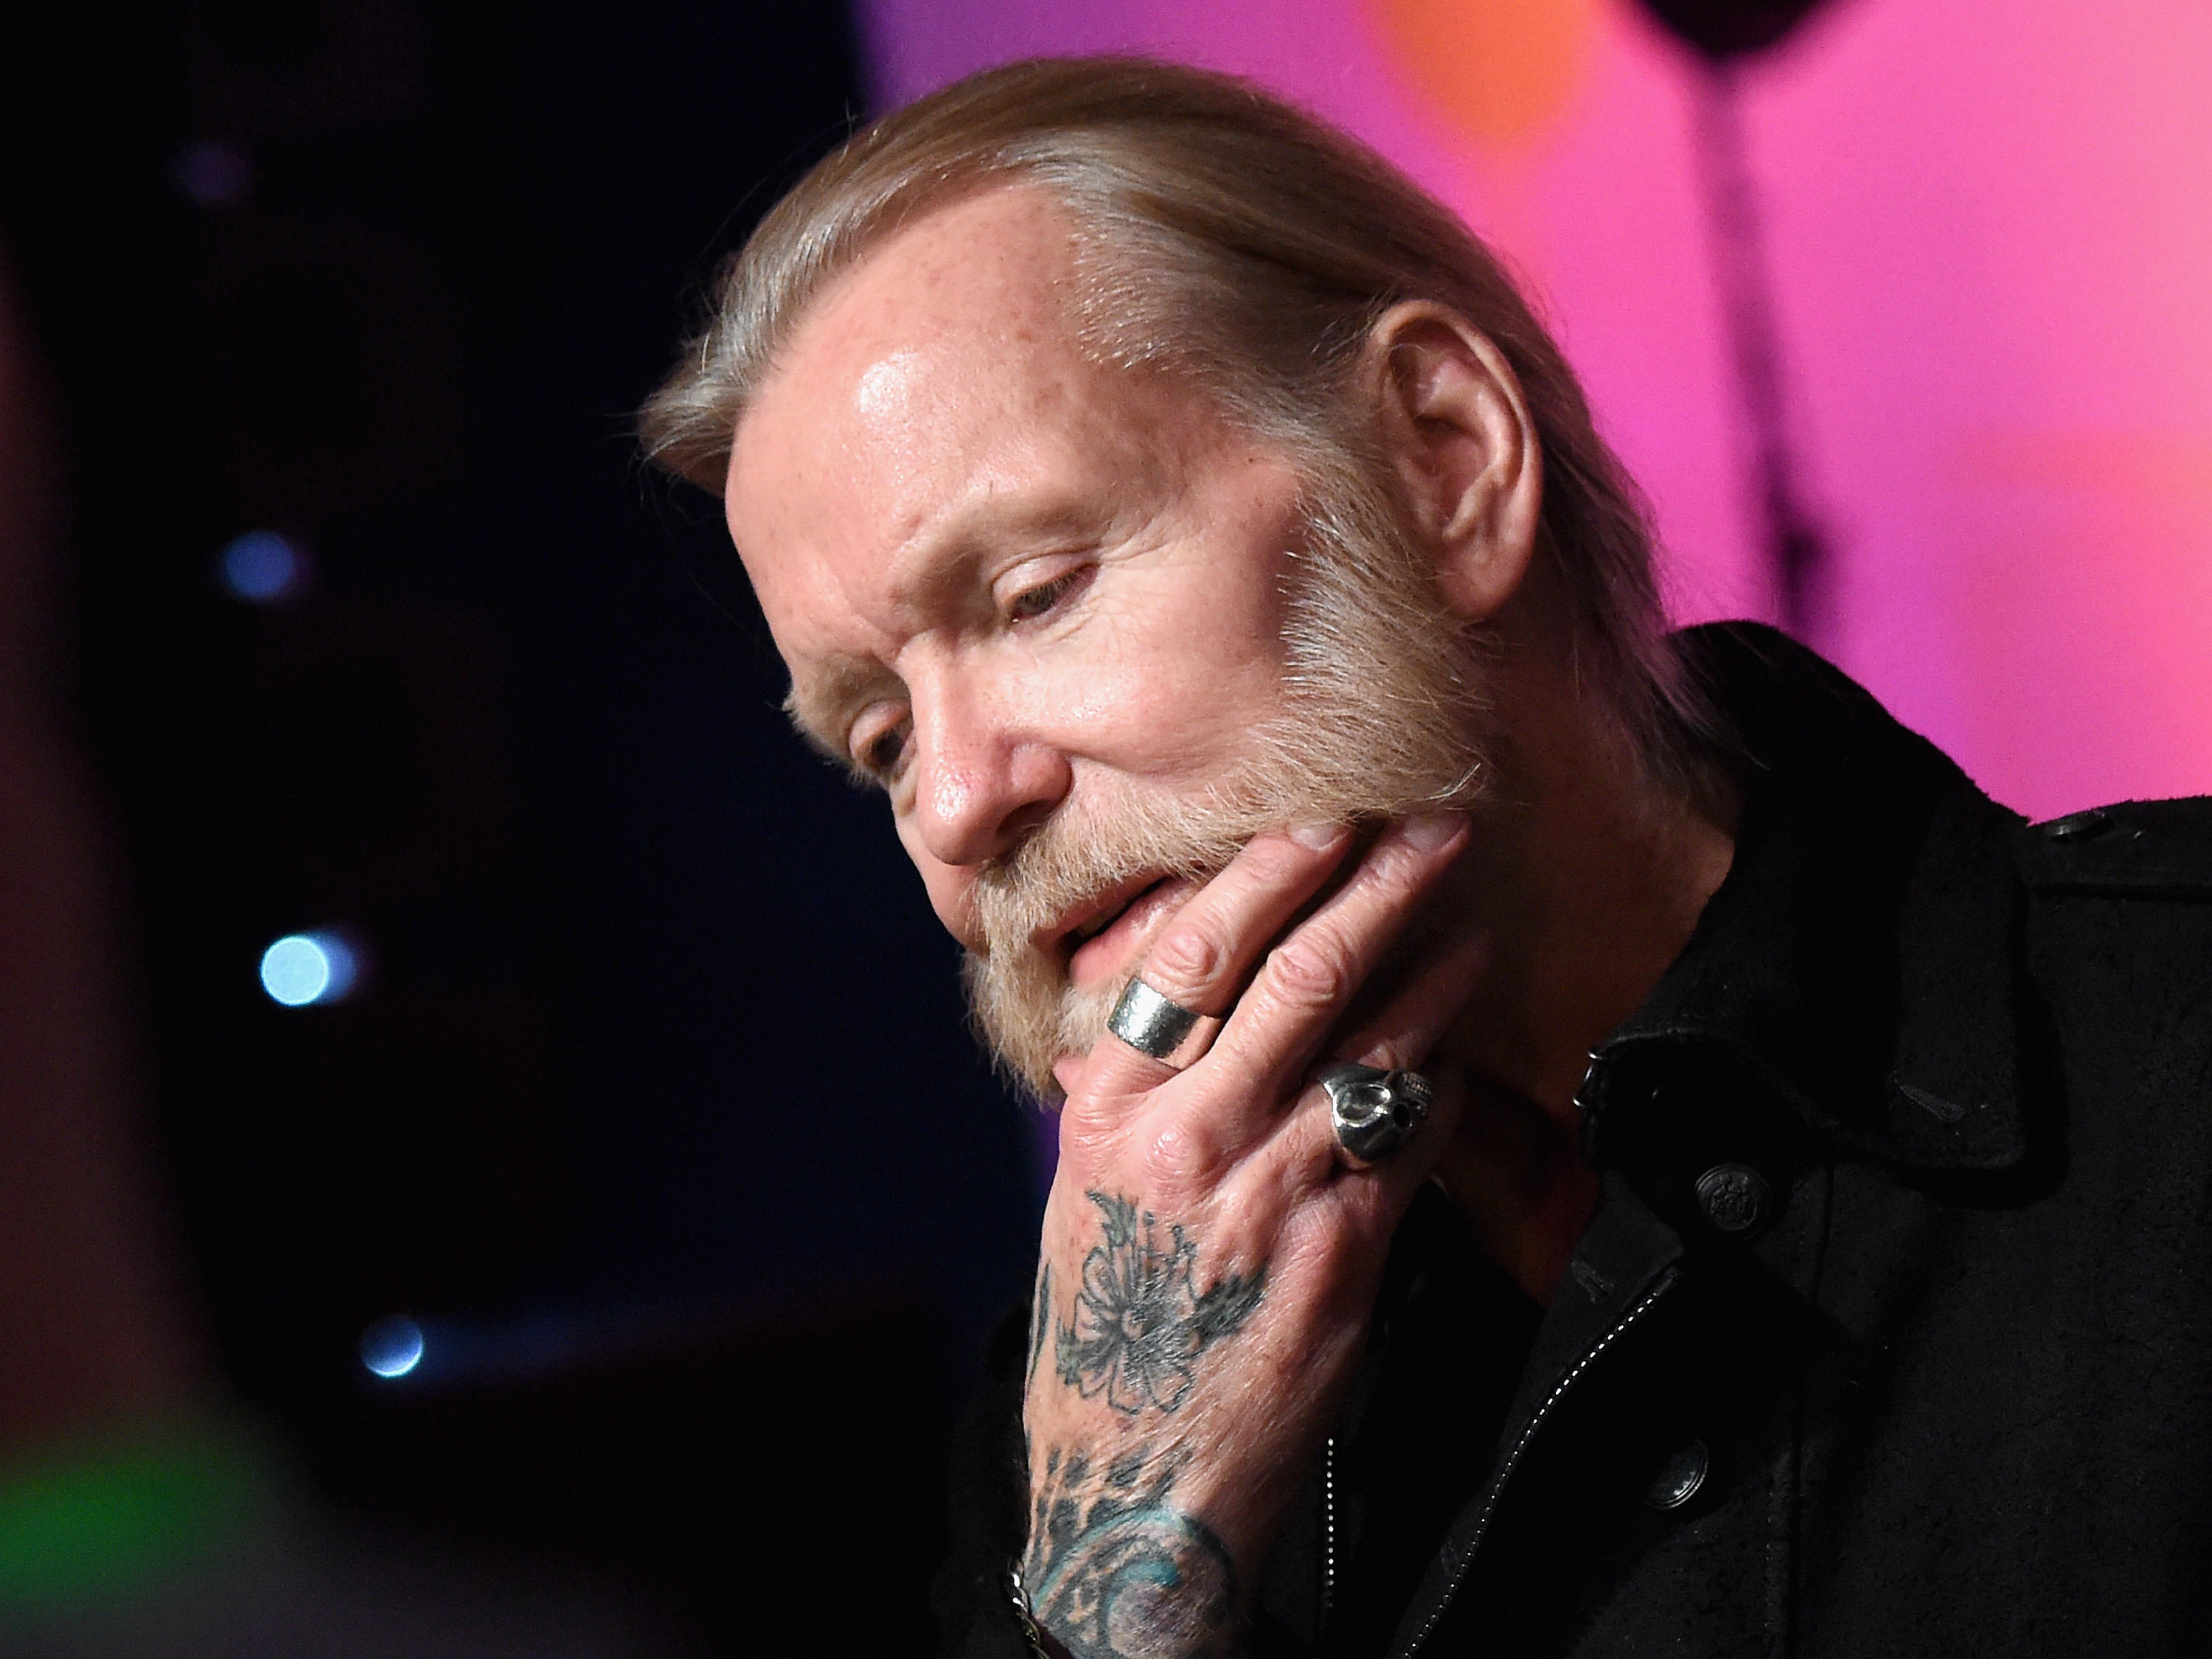 Gregg Allman pioneering singer for The Allman Brothers